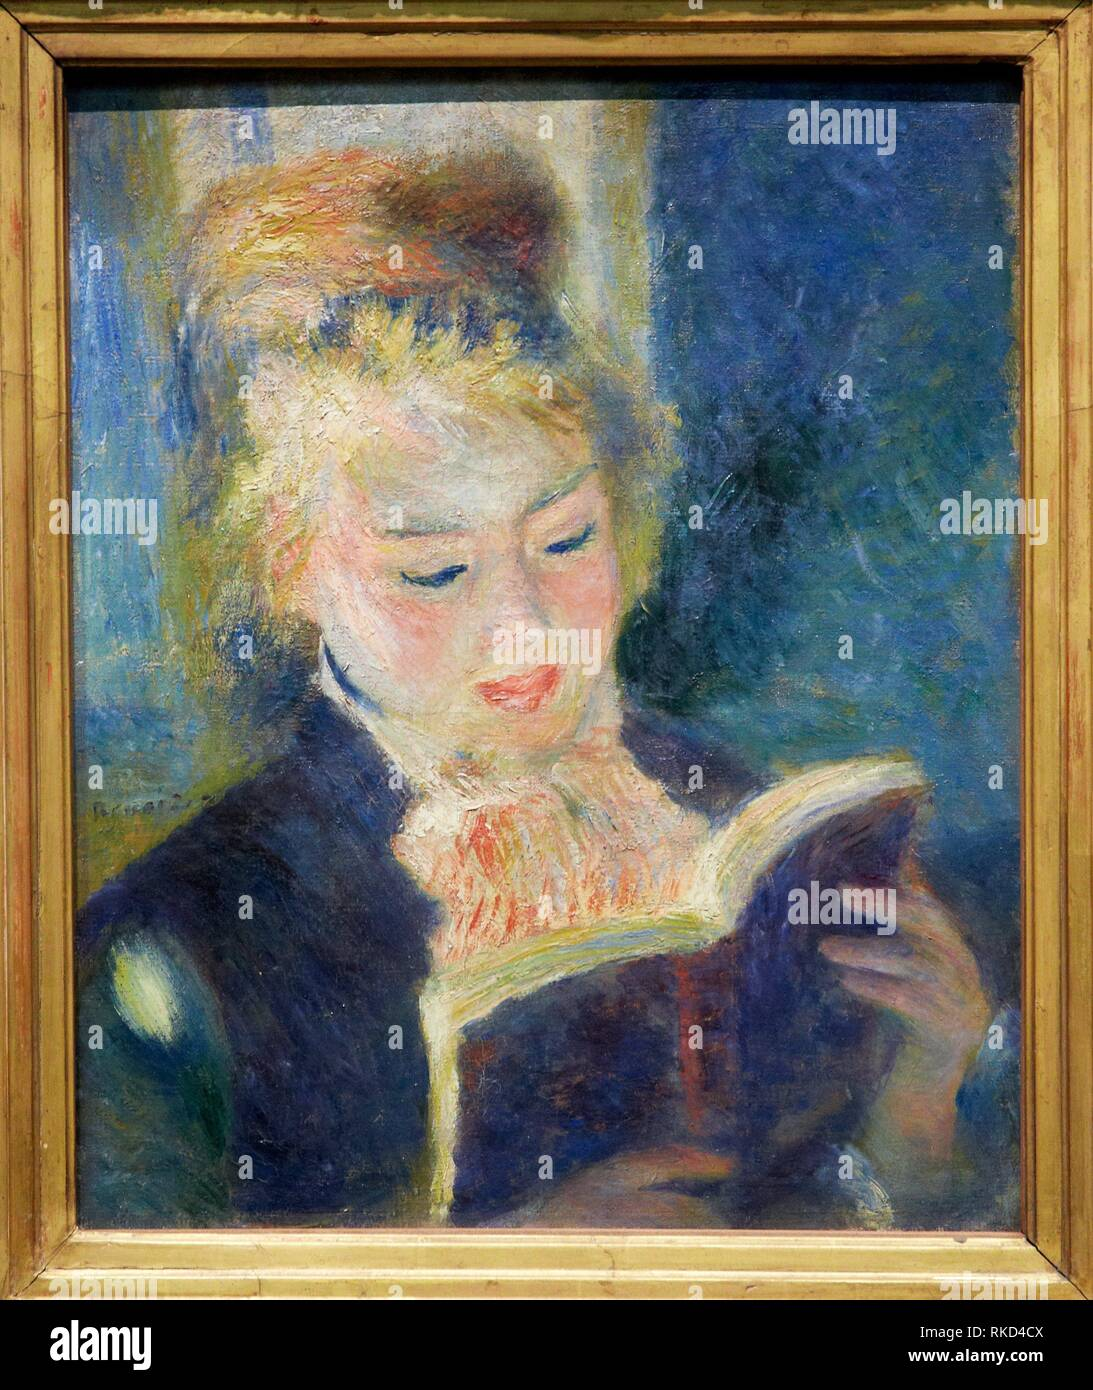 '''The reader'', 1875-1876, by Pierre-Auguste Renoir (1841-1919), oil on canvas, 47x38 cm. Musée d'Orsay. Orsay Museum. Paris. France. - Stock Image